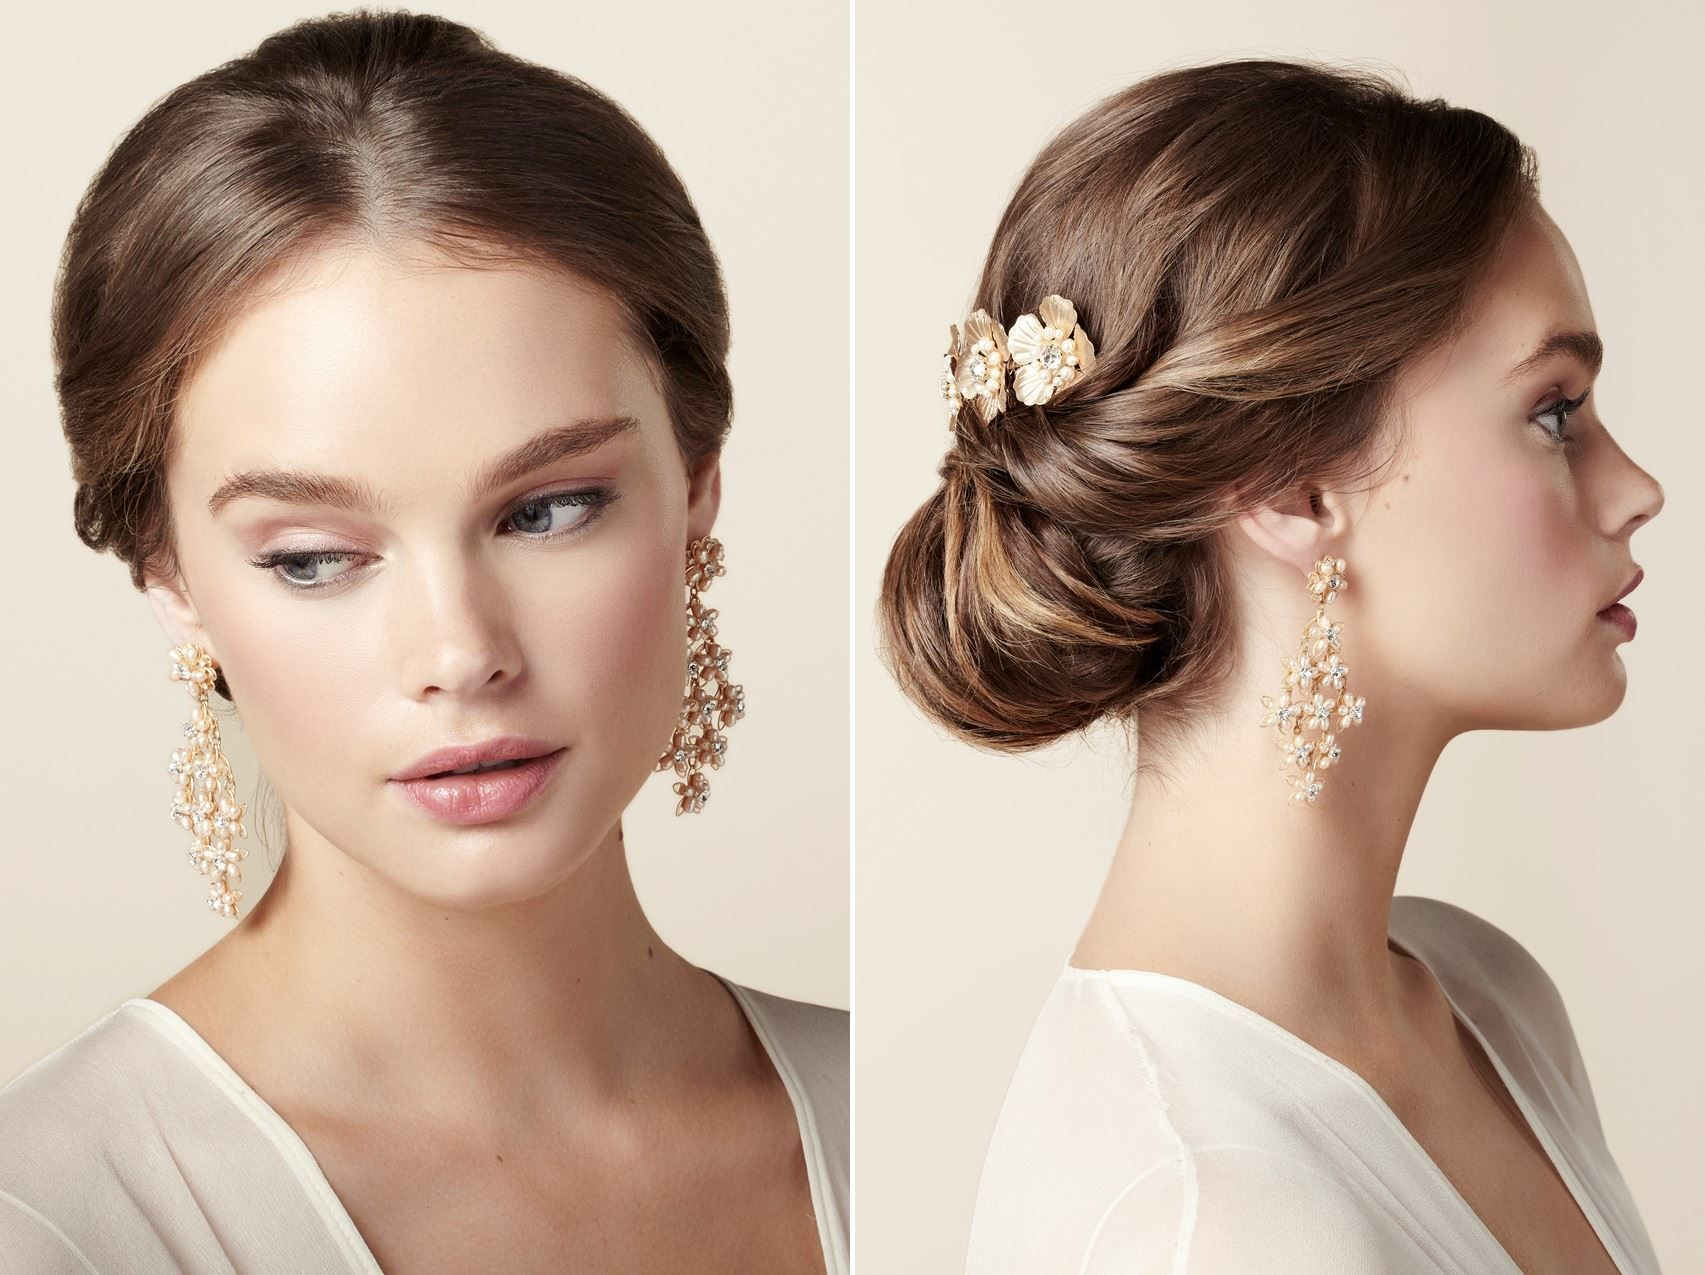 the beautiful new collection of bridal hair accessories & jewelry